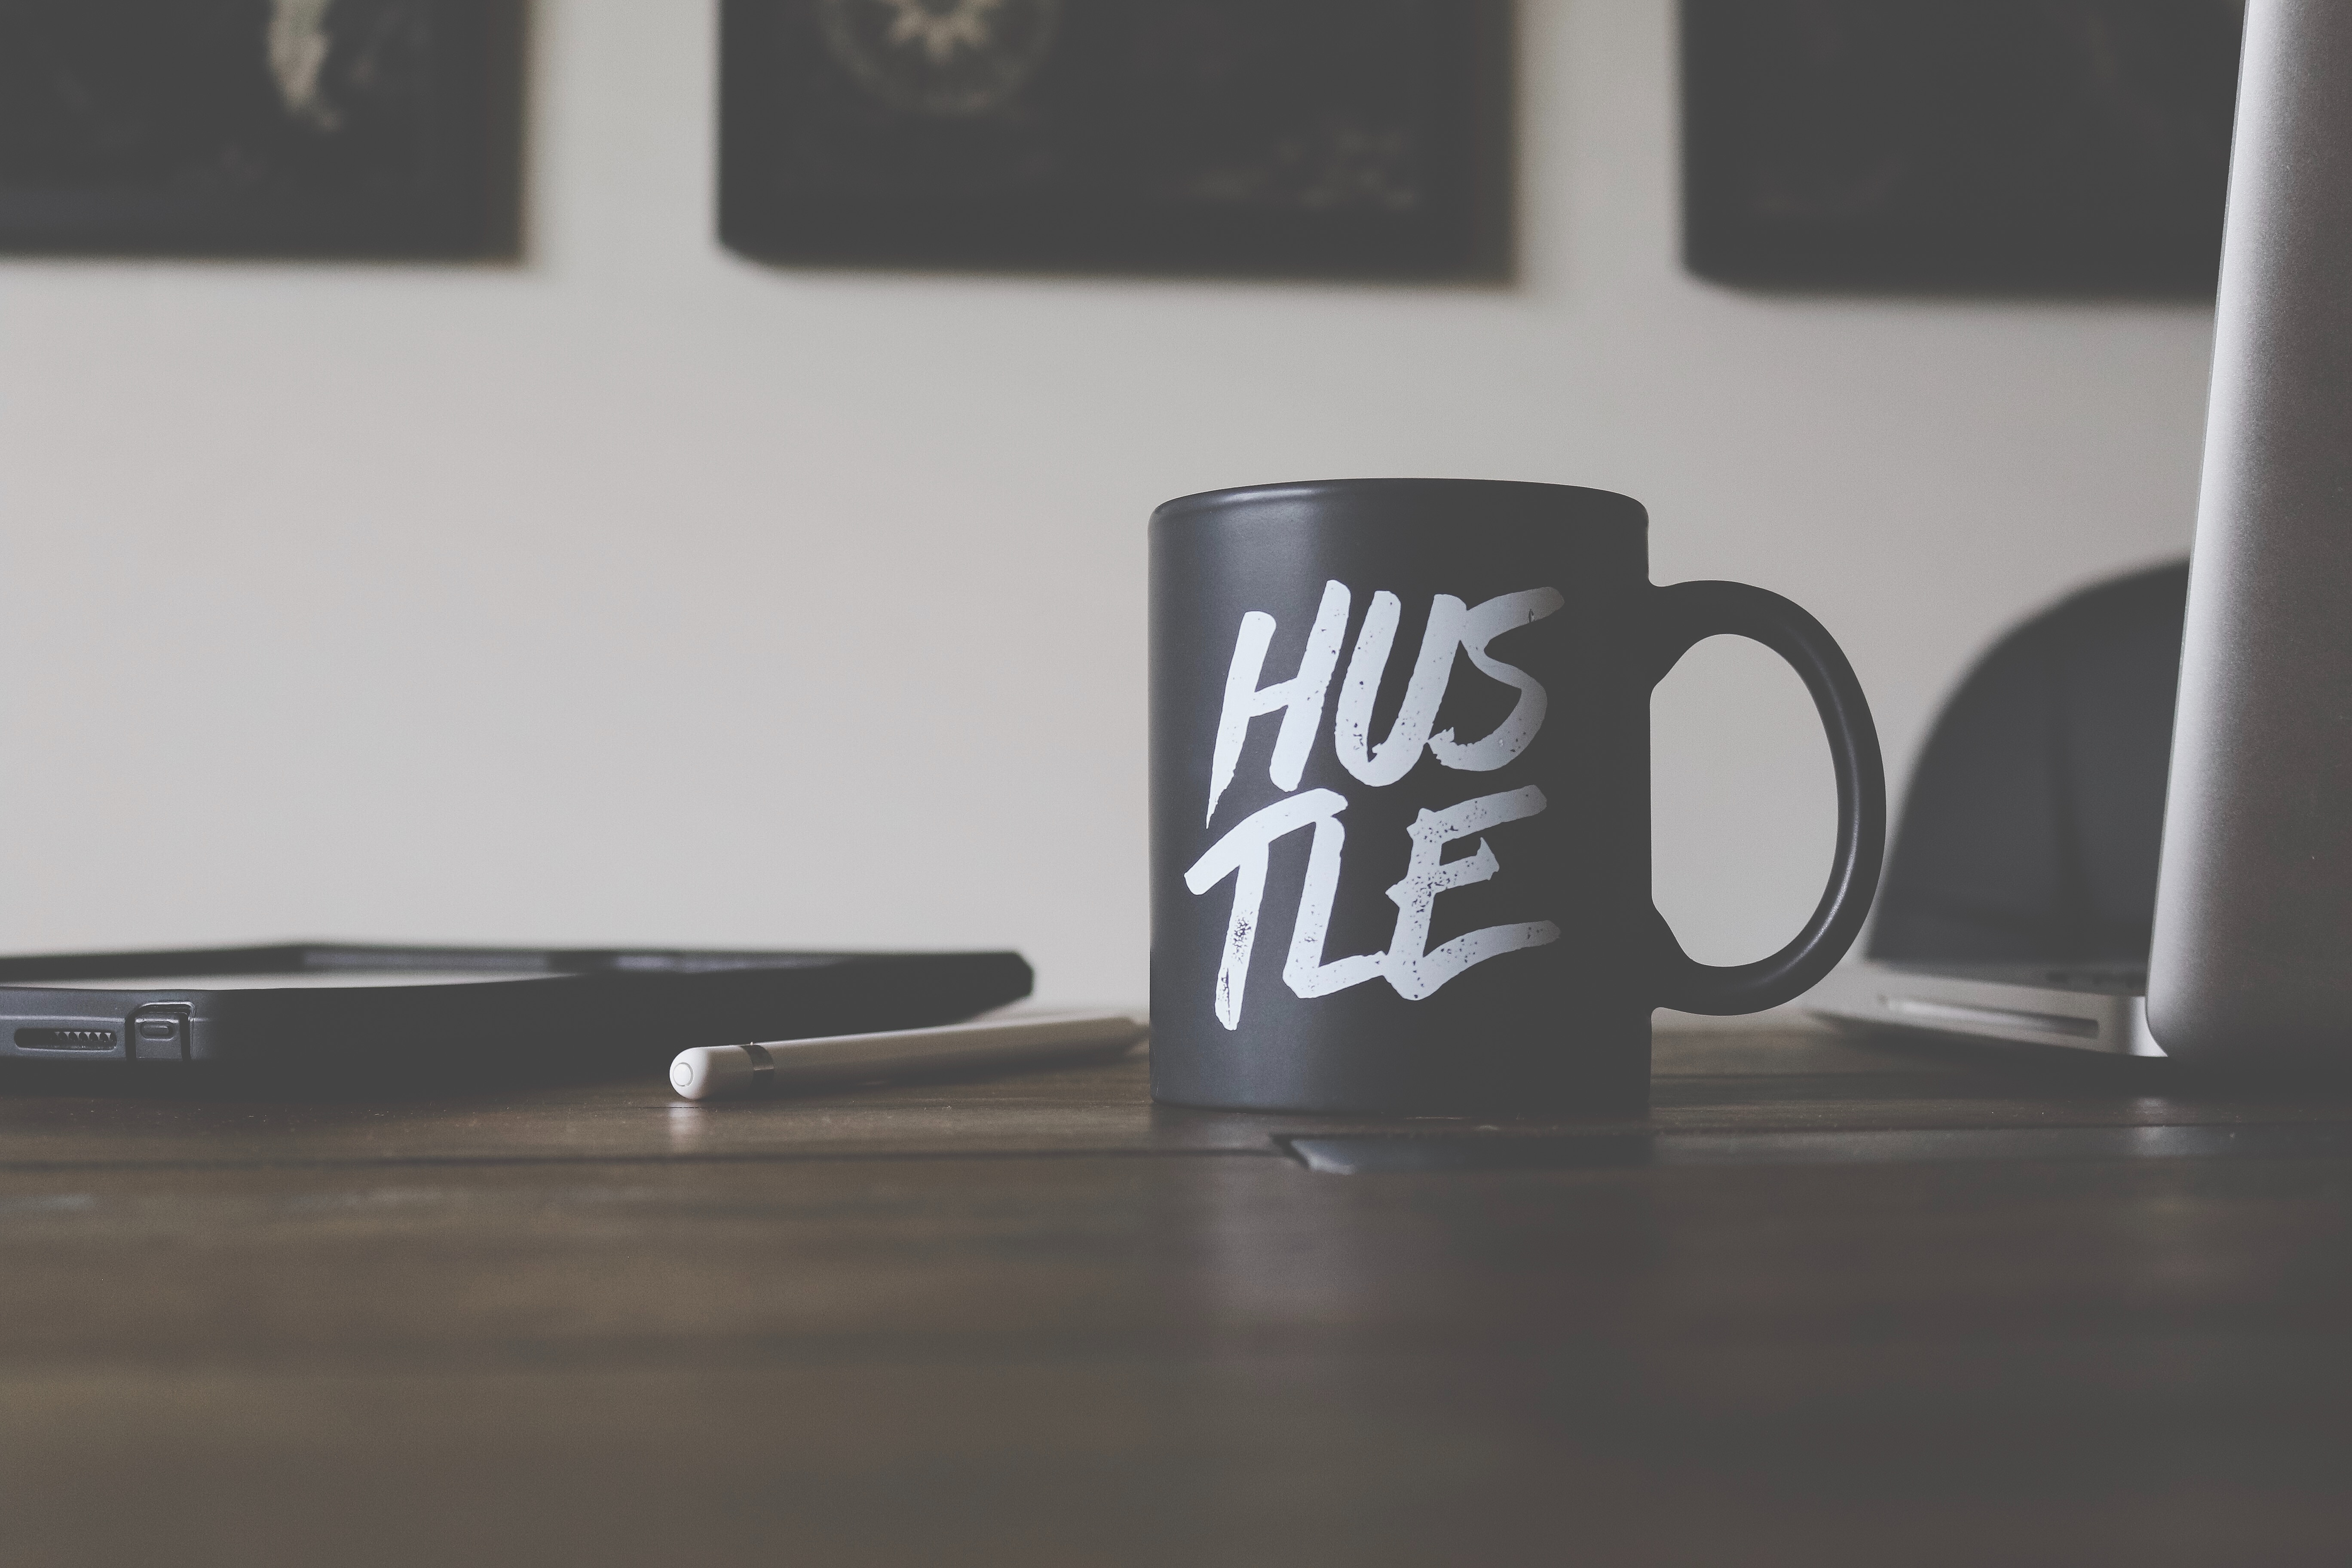 A black coffee mug with the word 'Hustle' printed on it, sitting on a desk by a laptop and a pencil.